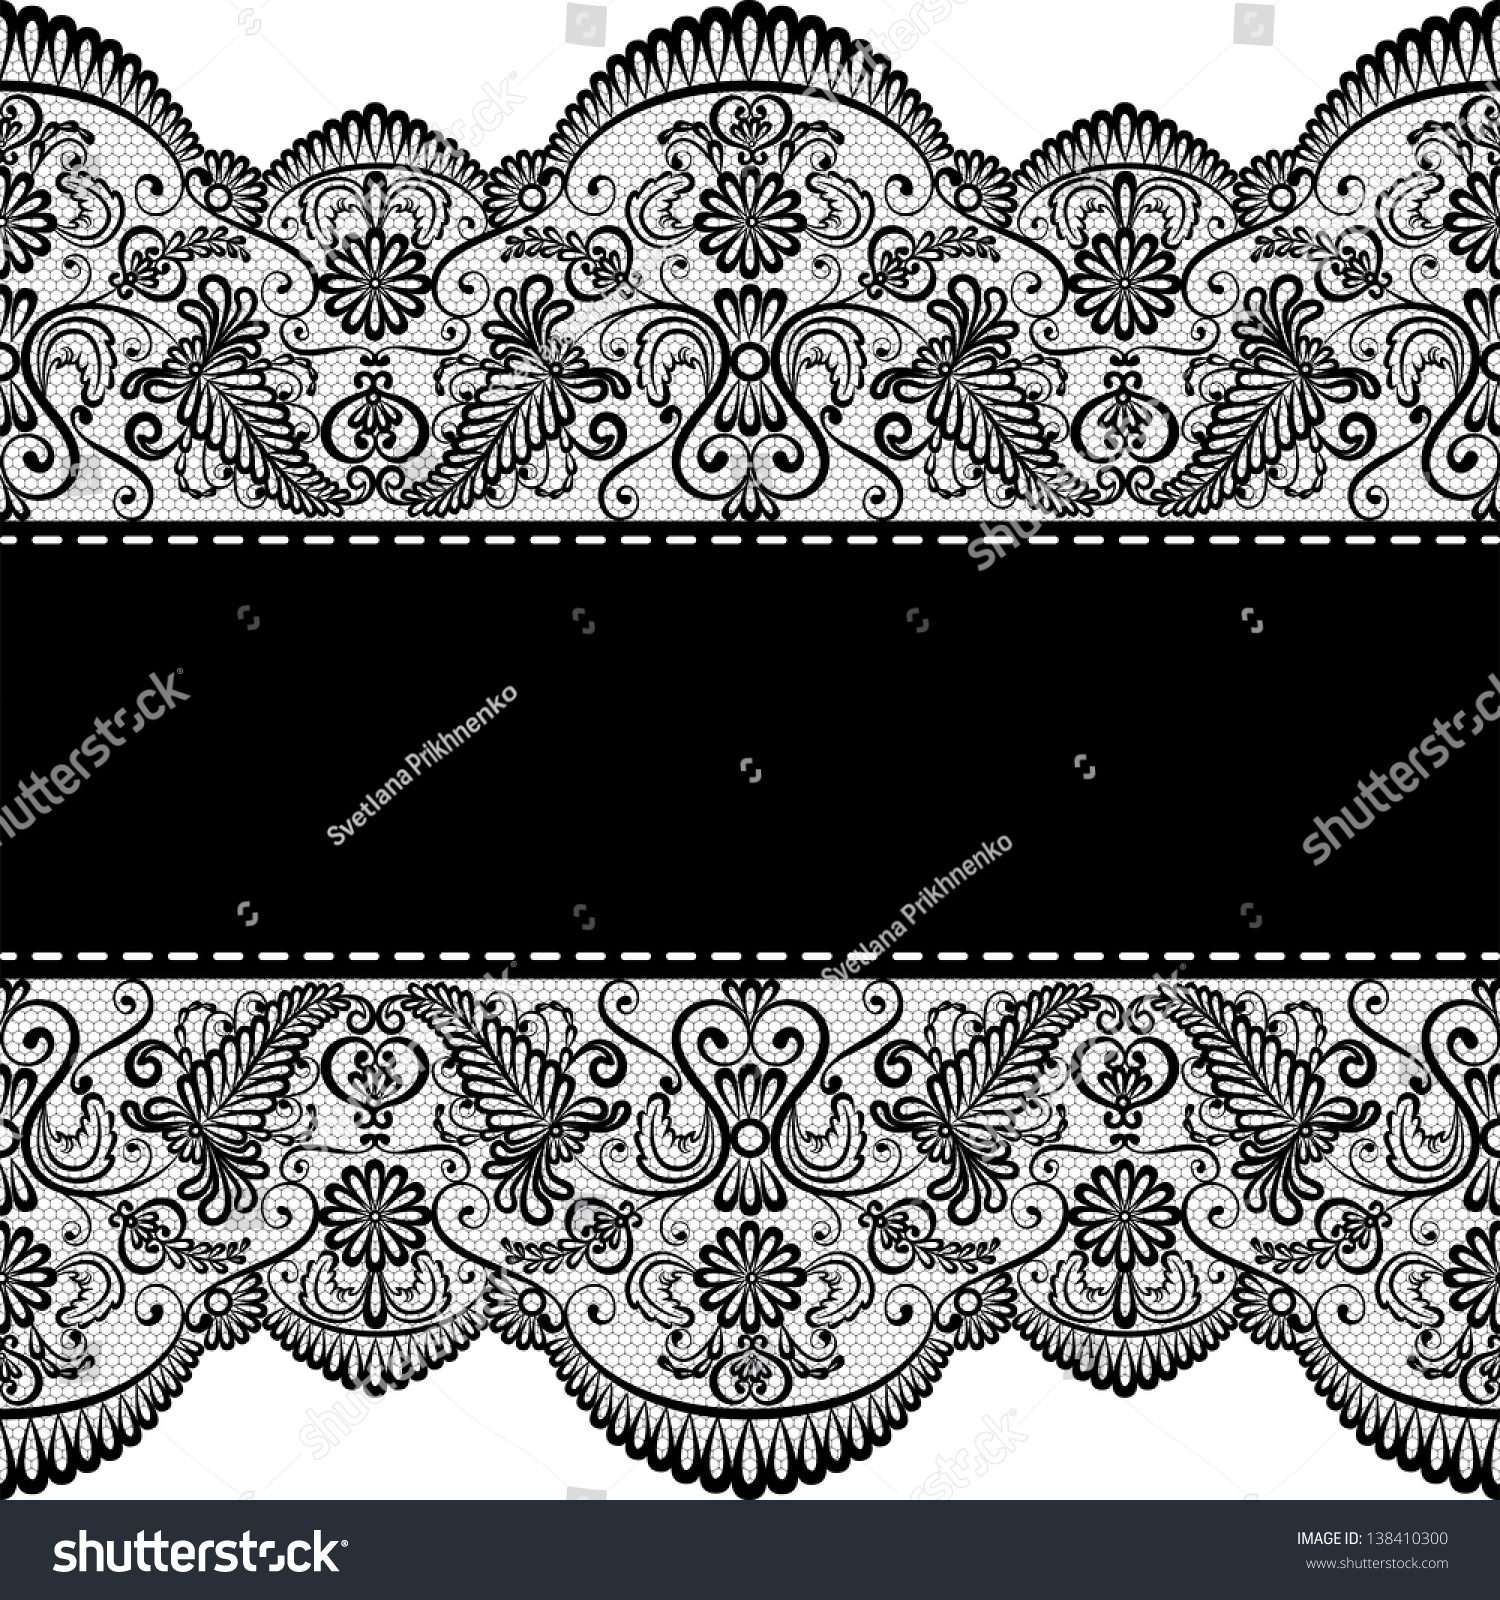 Template Wedding Invitation Greeting Card Lace Stock Vector (Royalty ...